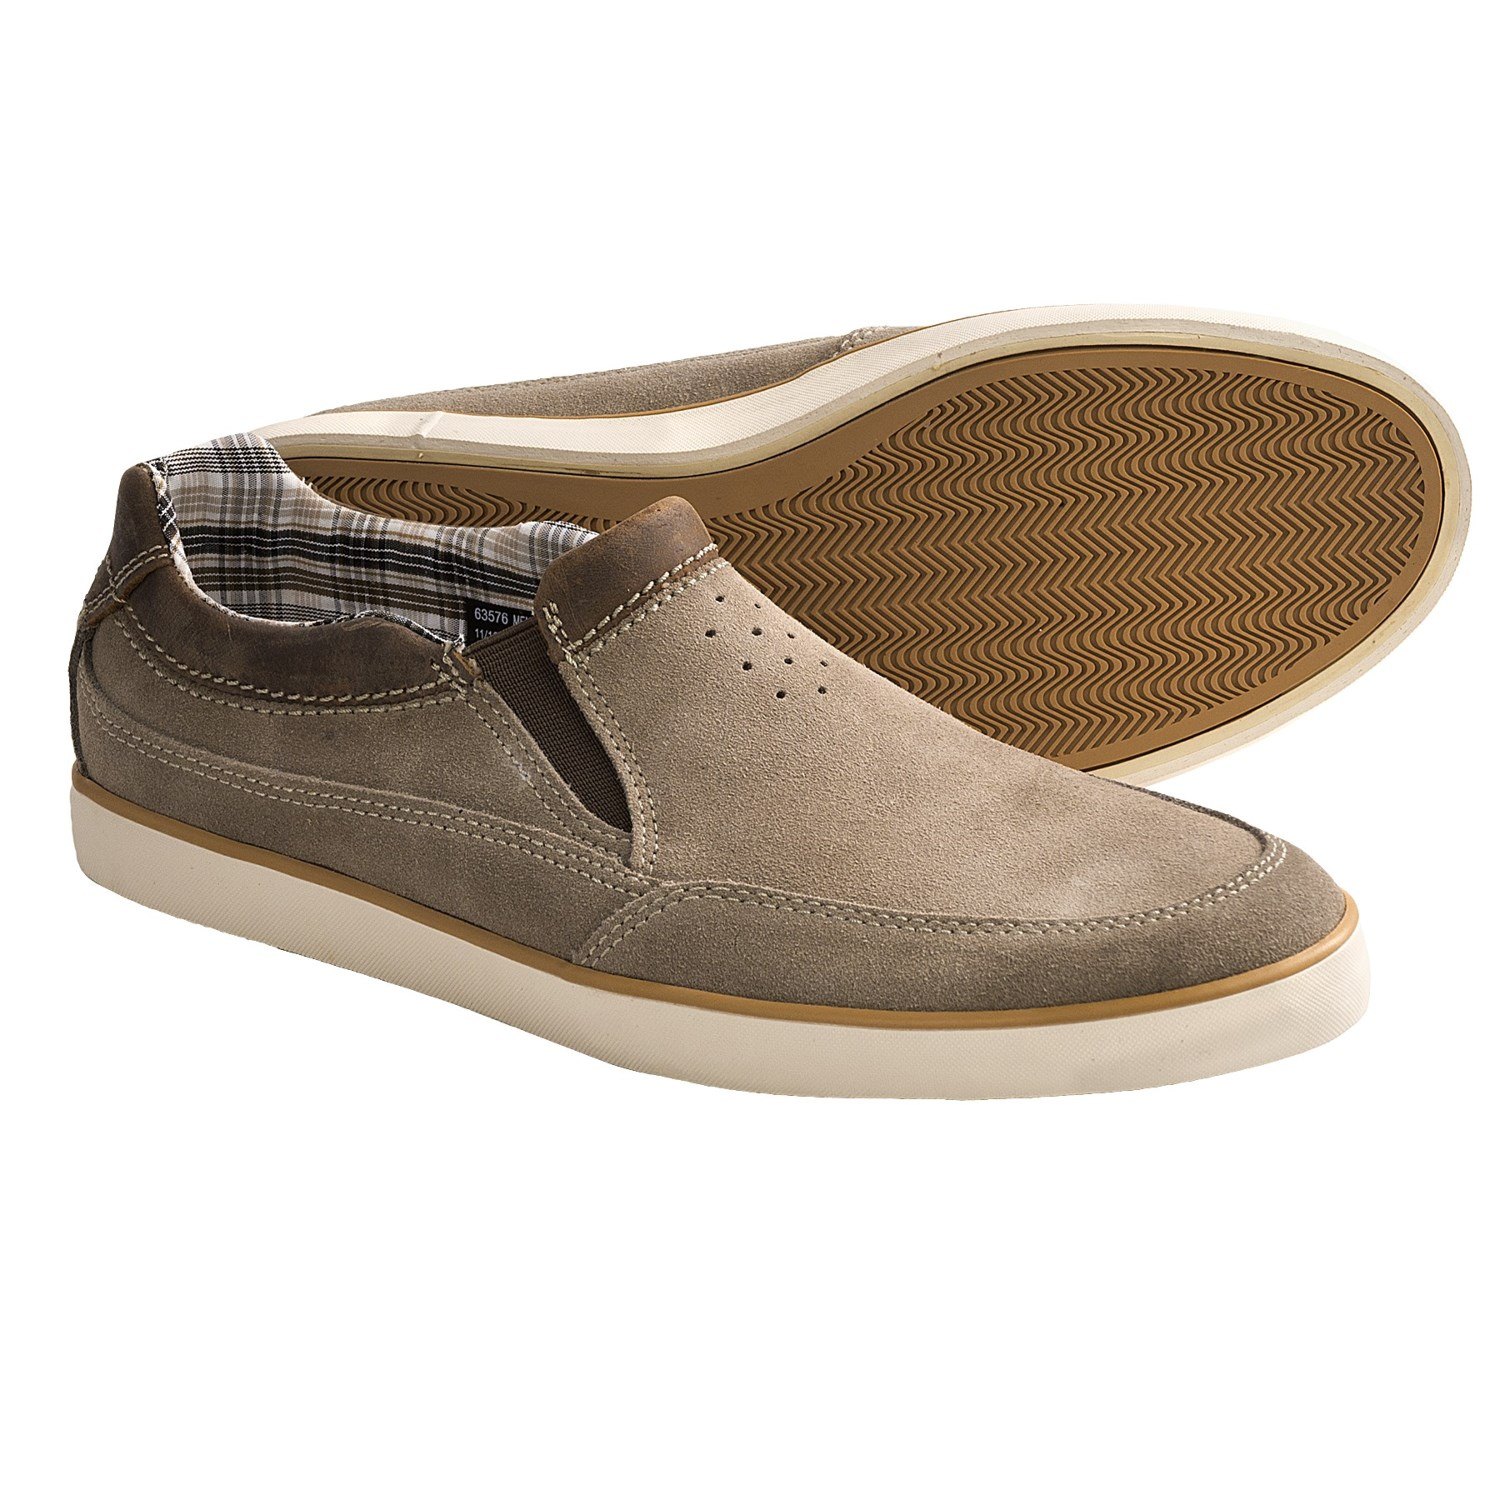 Clarks Munson Slip On Shoes Suede For Men Save 25